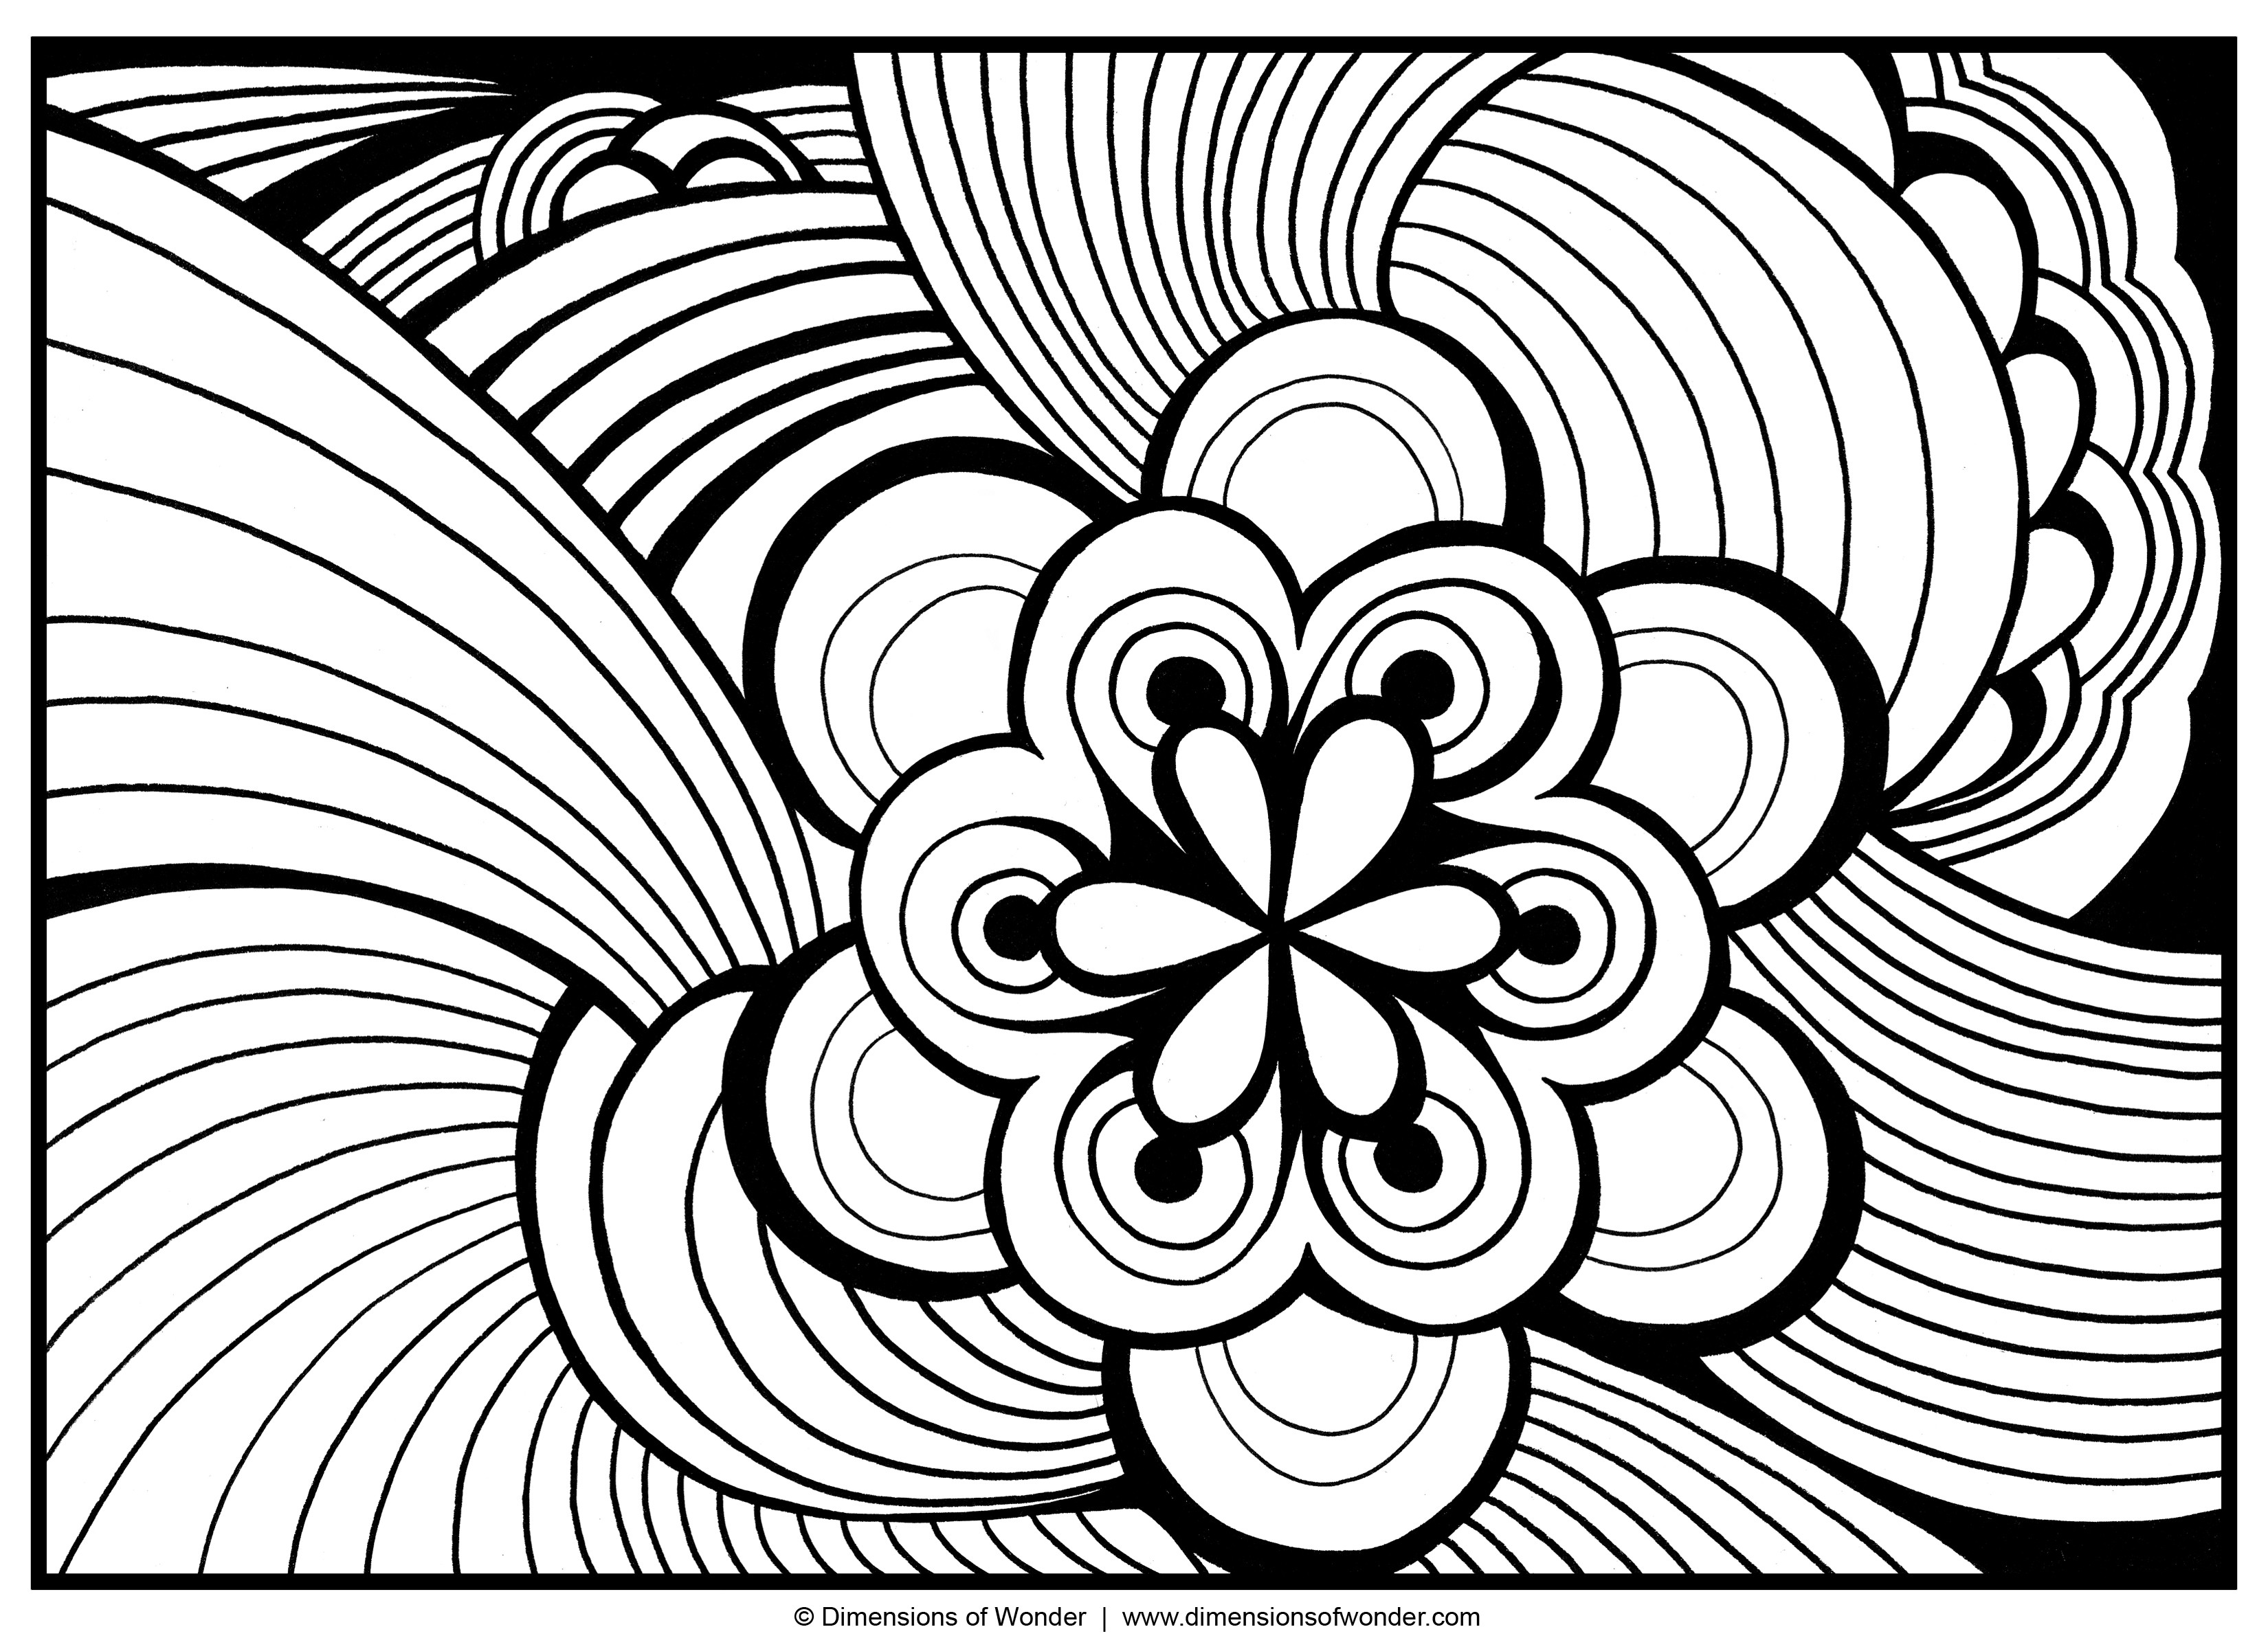 3300x2400 Abstract Art Coloring Pages Freecolorngpages.co